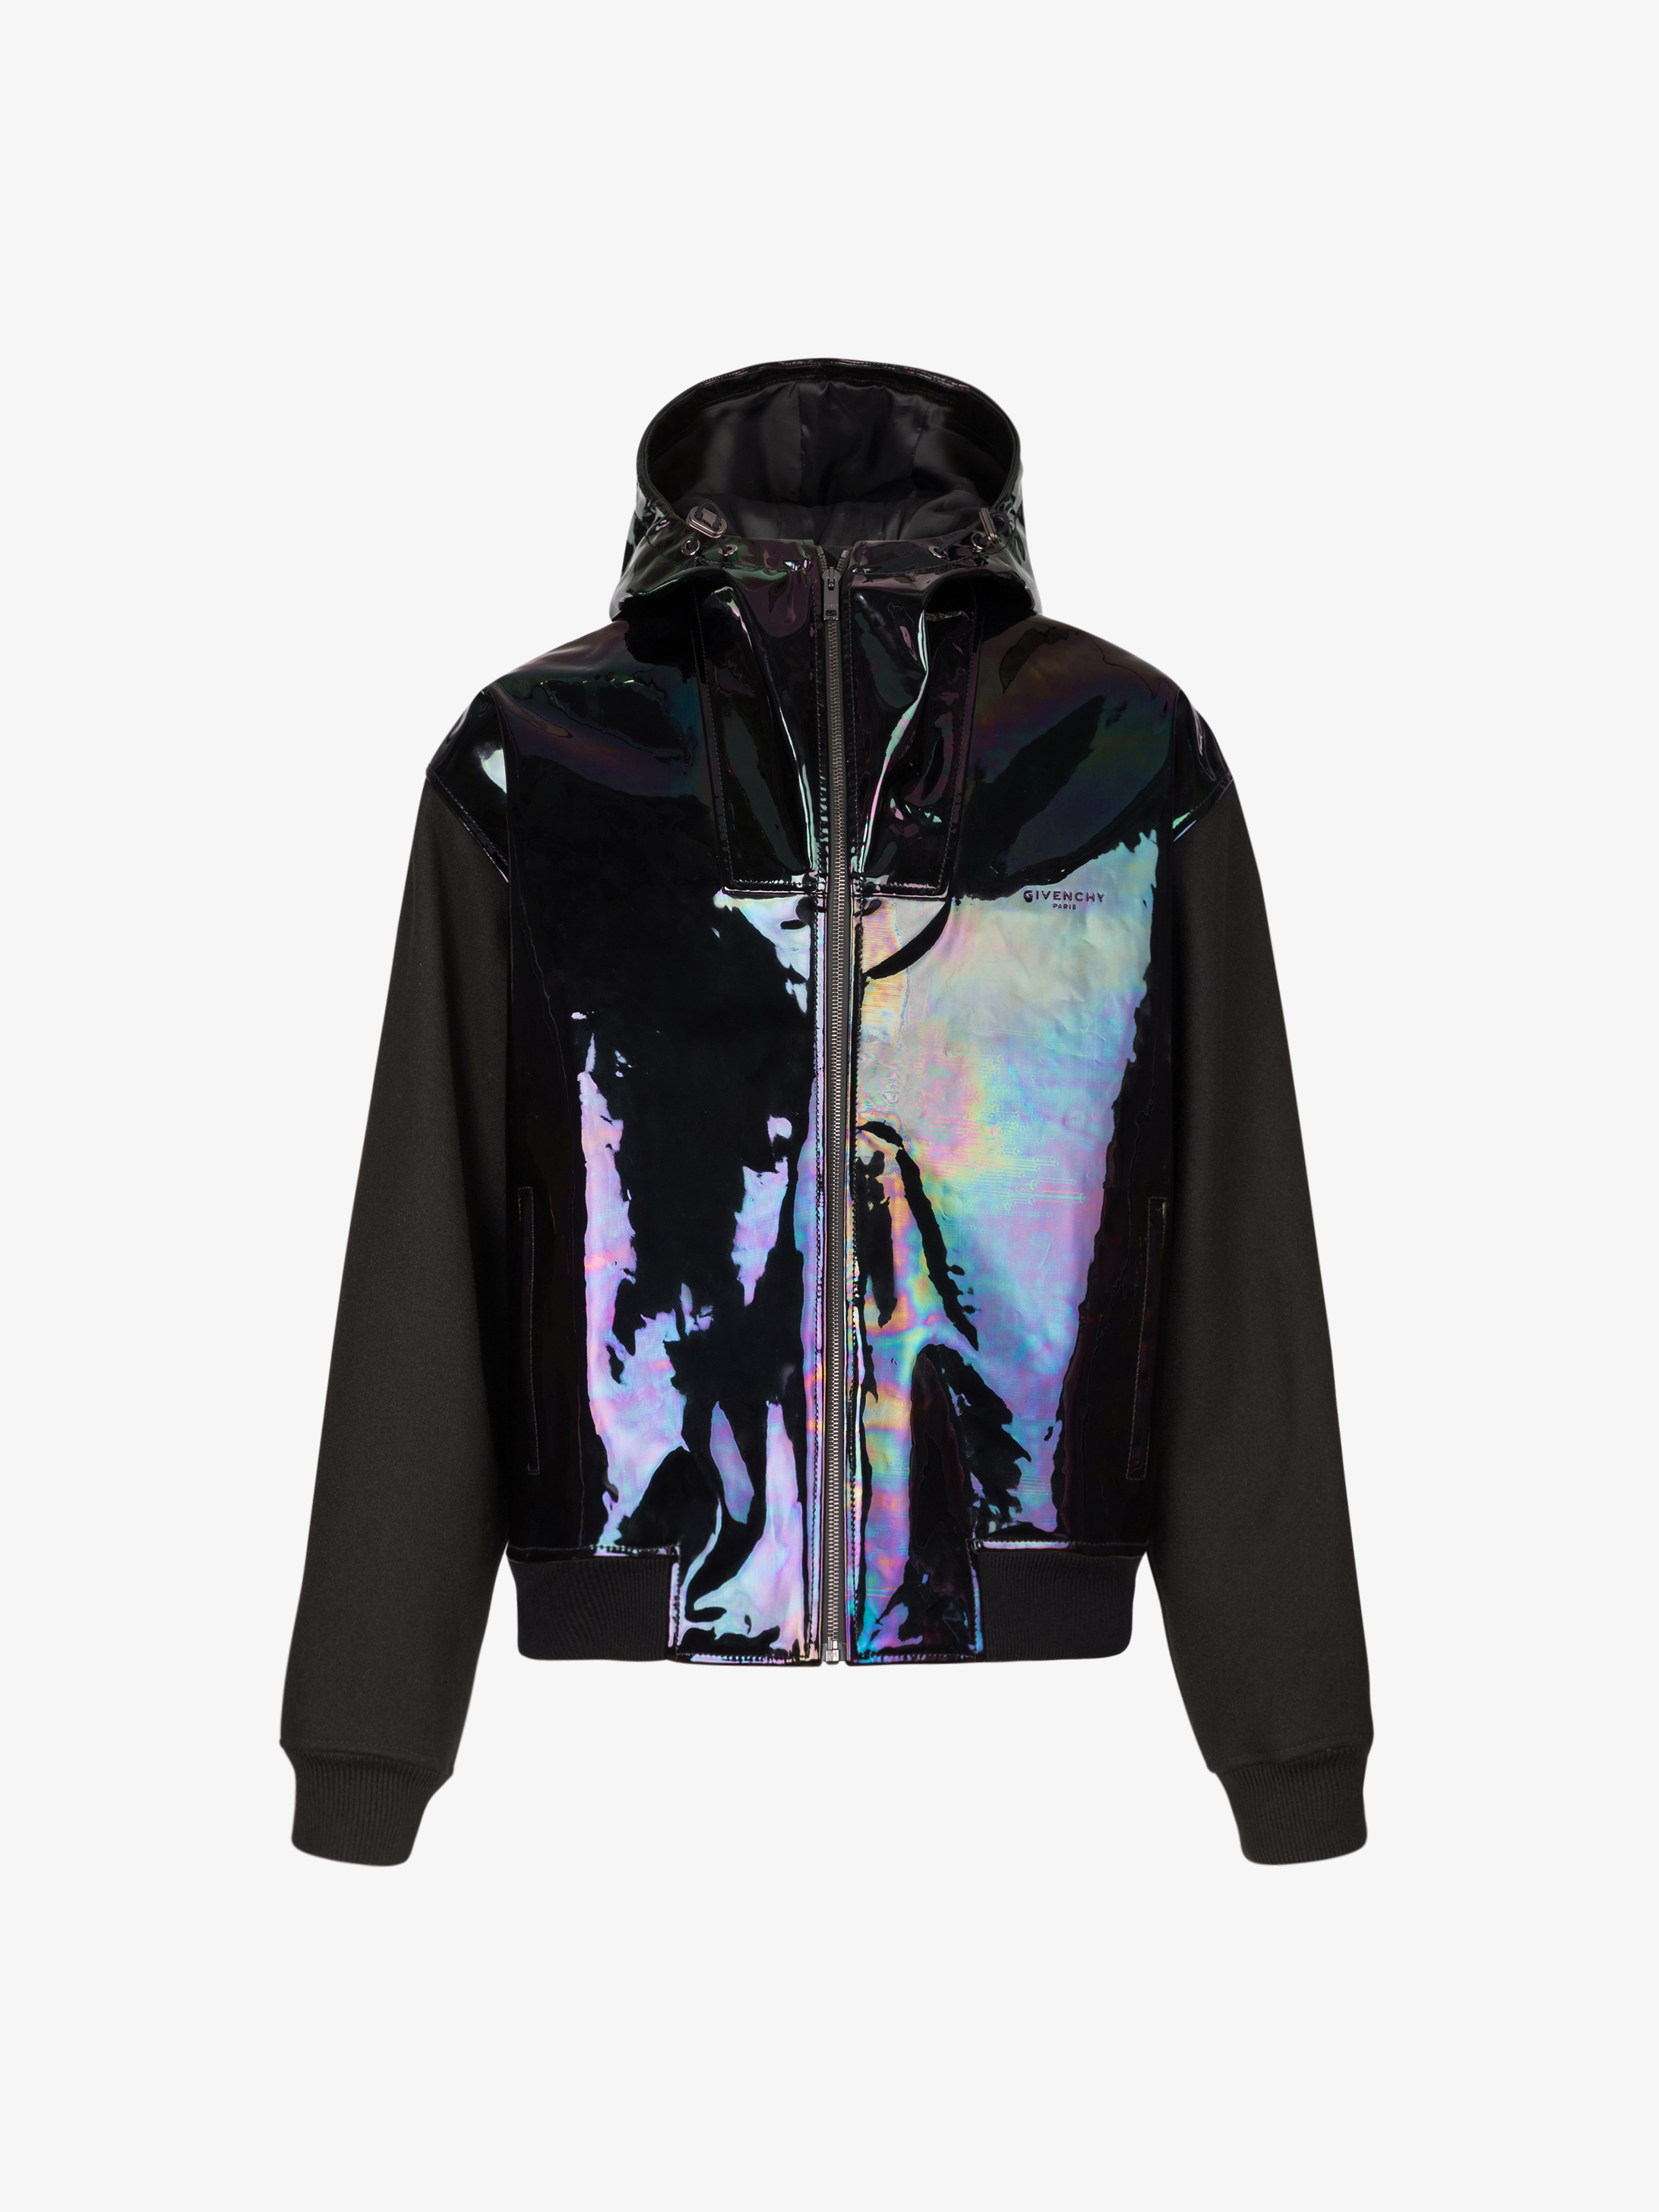 Hooded jacket in iridescent leather and neoprene